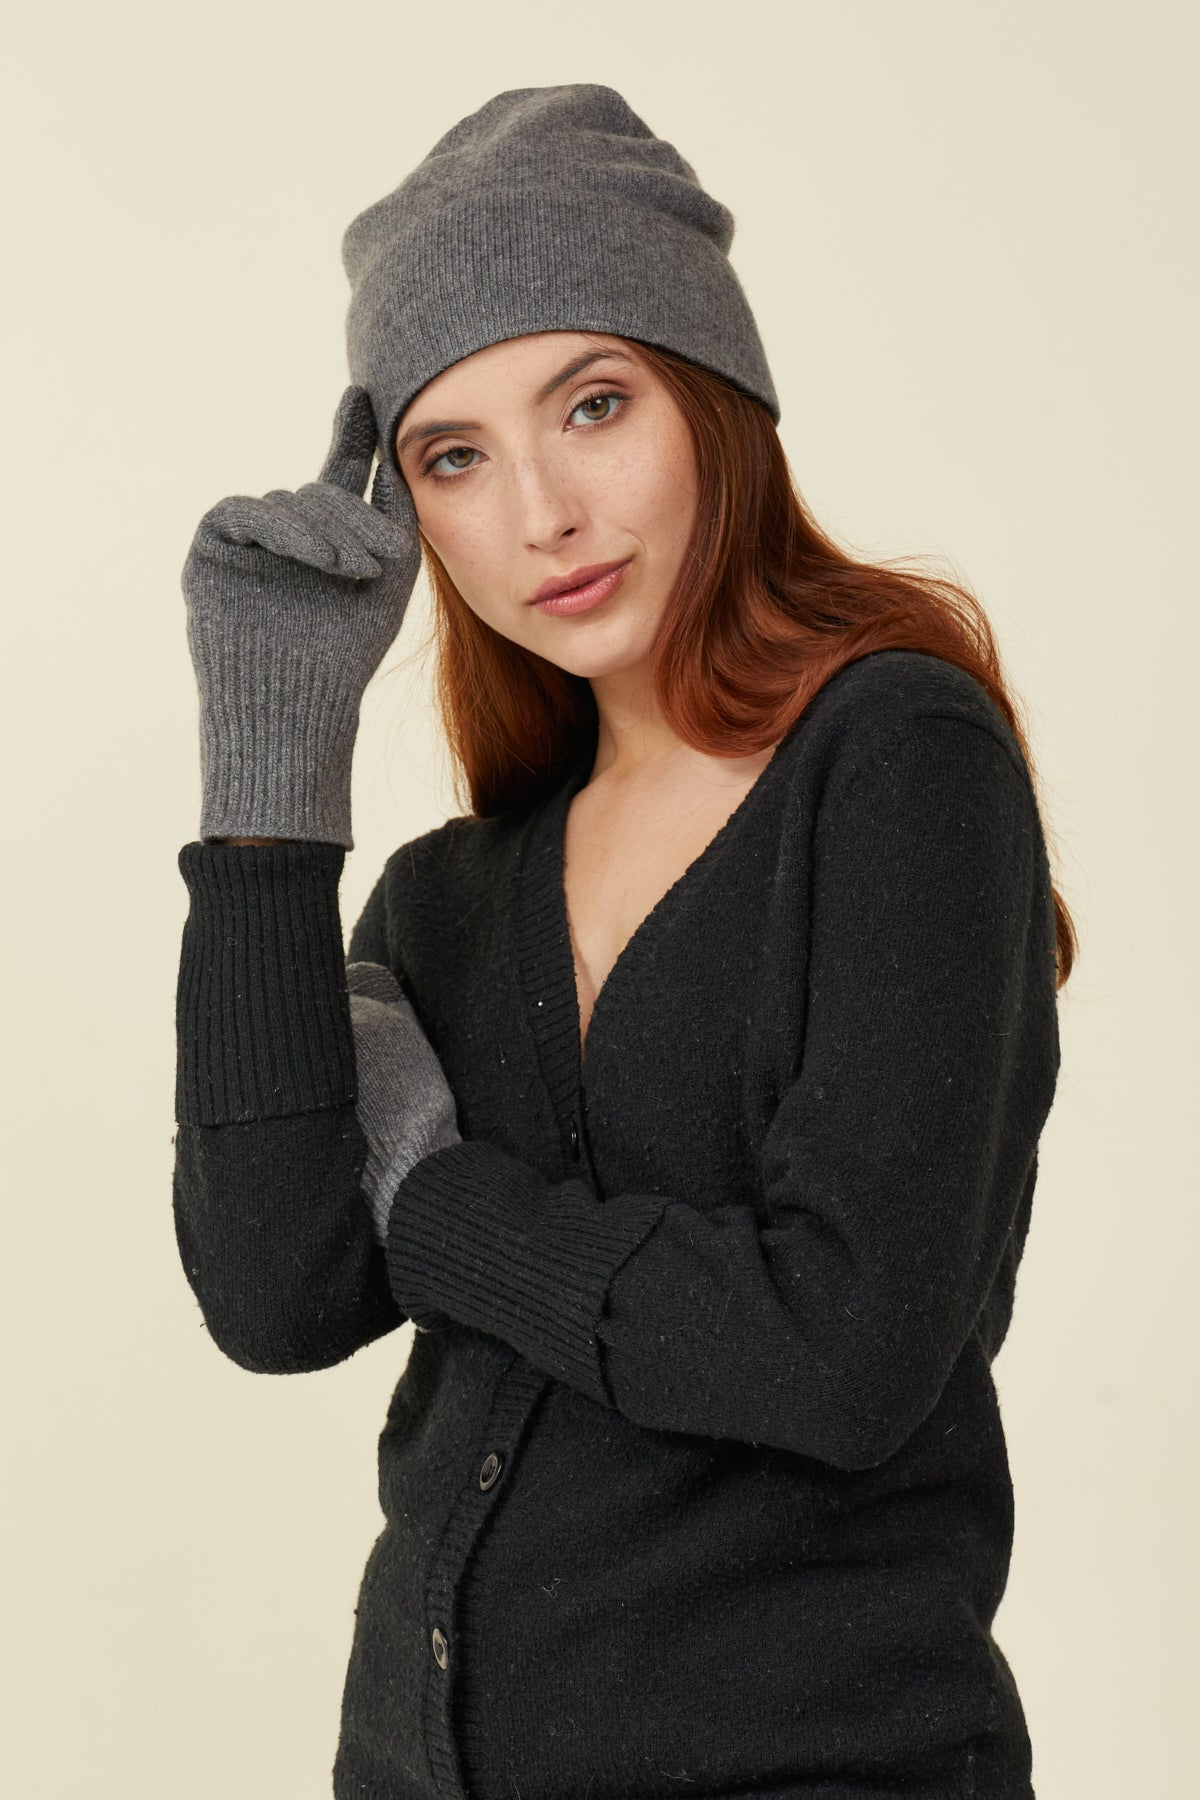 Newly Redesigned Luxurious Unisex Cashmere Asymmetric Cuff Gloves with FIBREHEAT™ Self Heating Liner